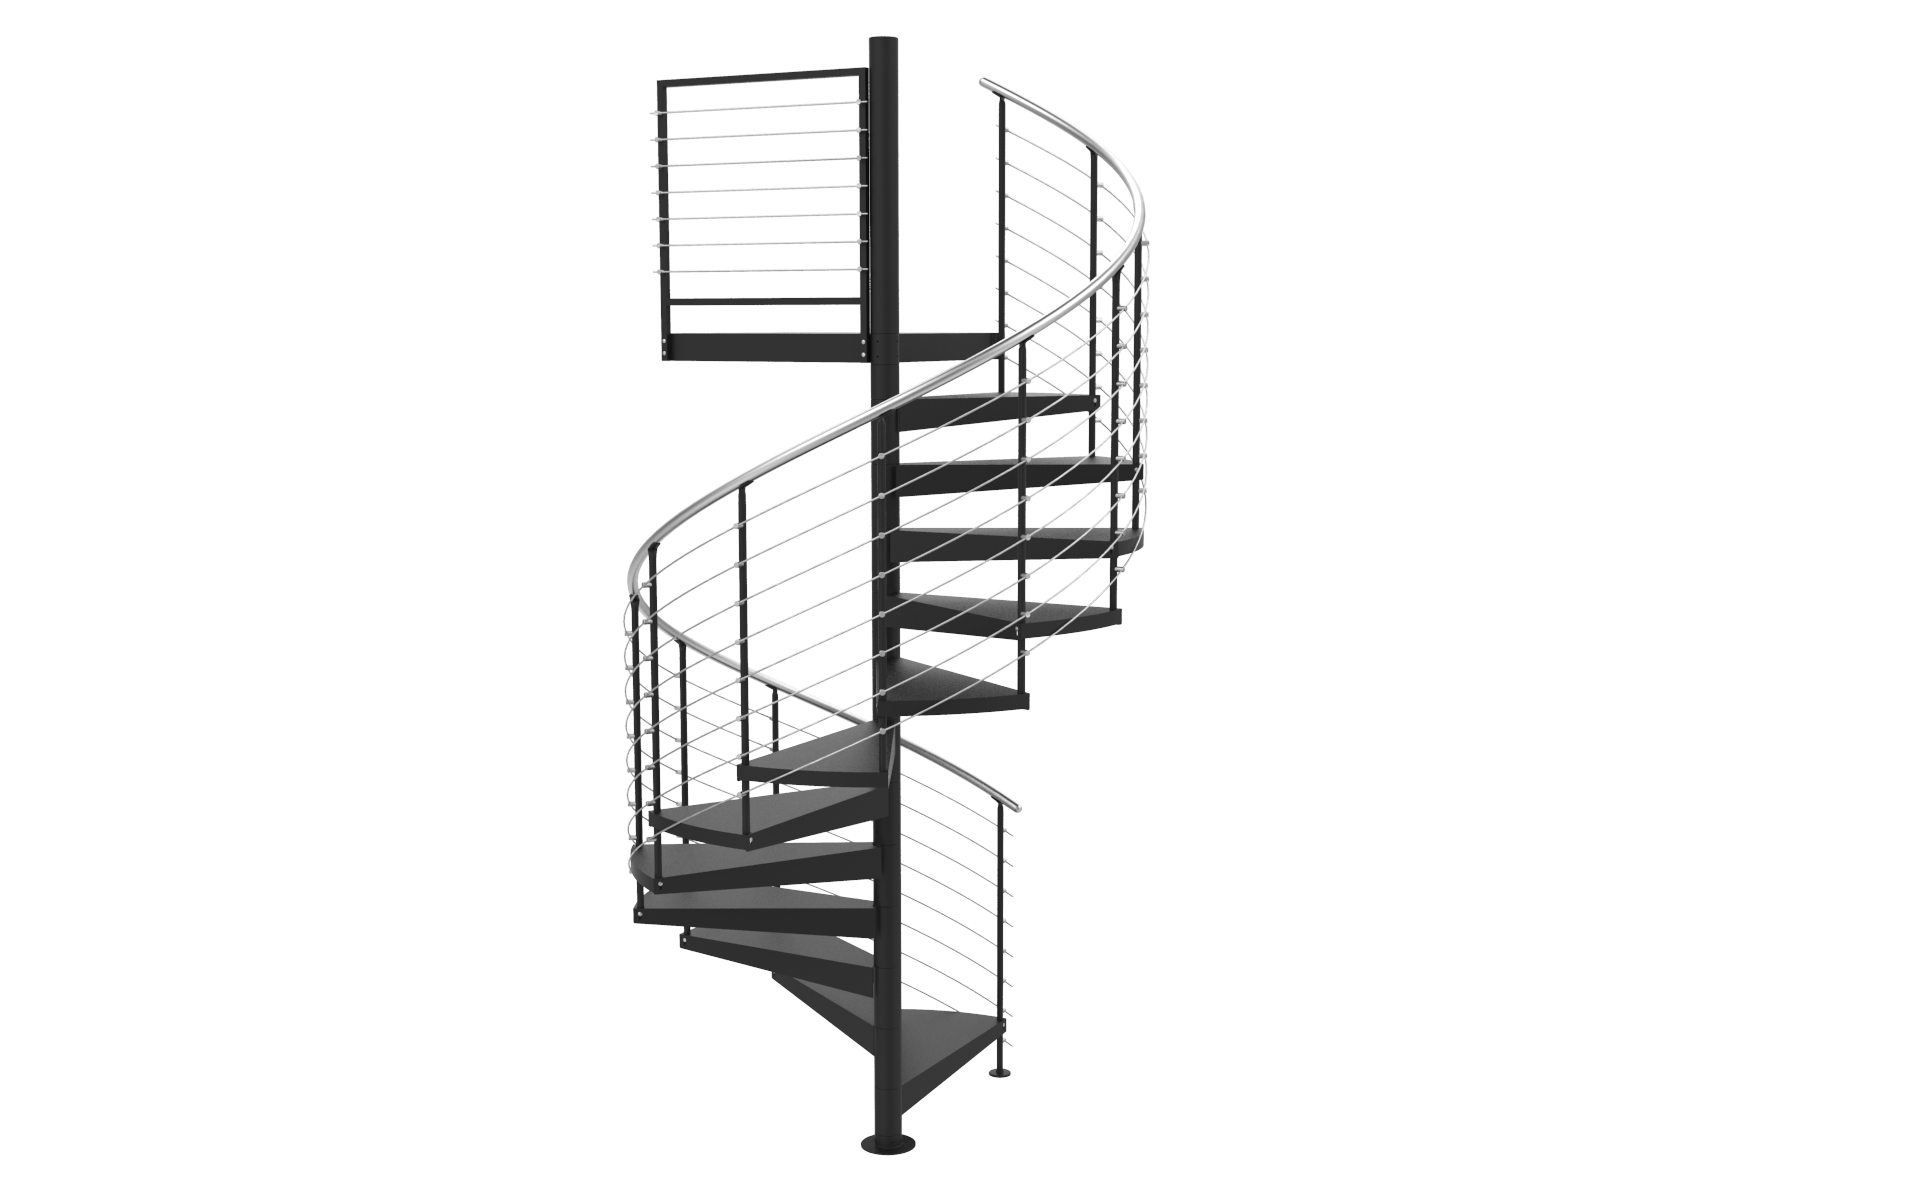 Spiral stairs png. D horizontal stainless